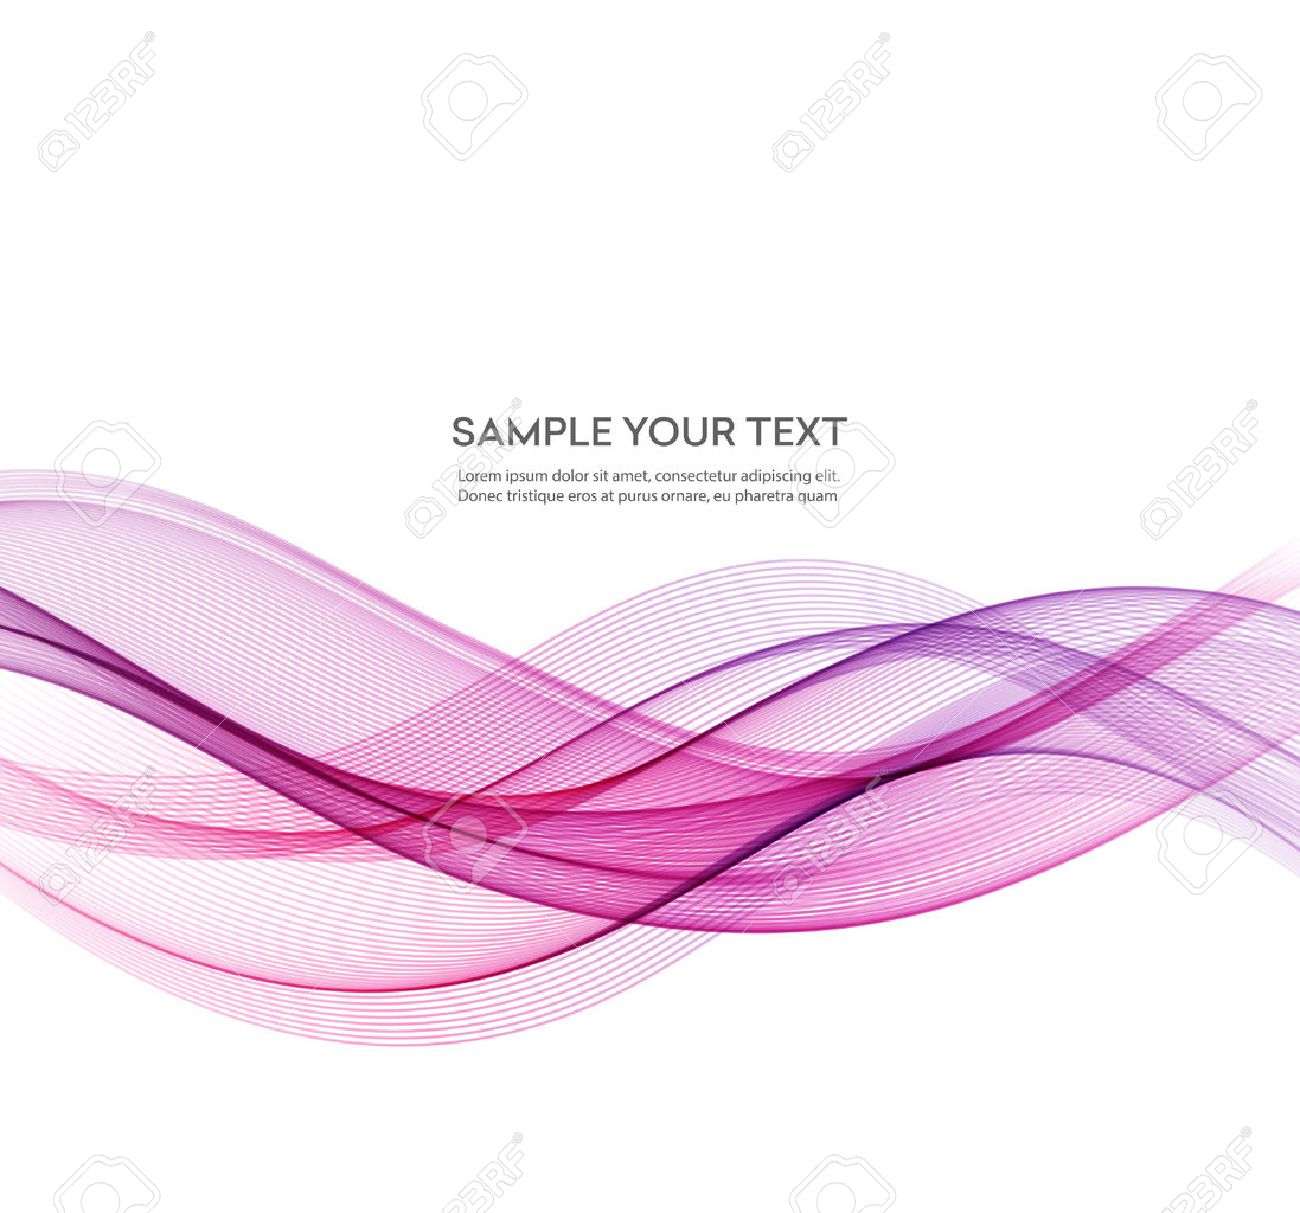 Abstract smooth color wave vector. Curve flow pink motion illustration - 53408229